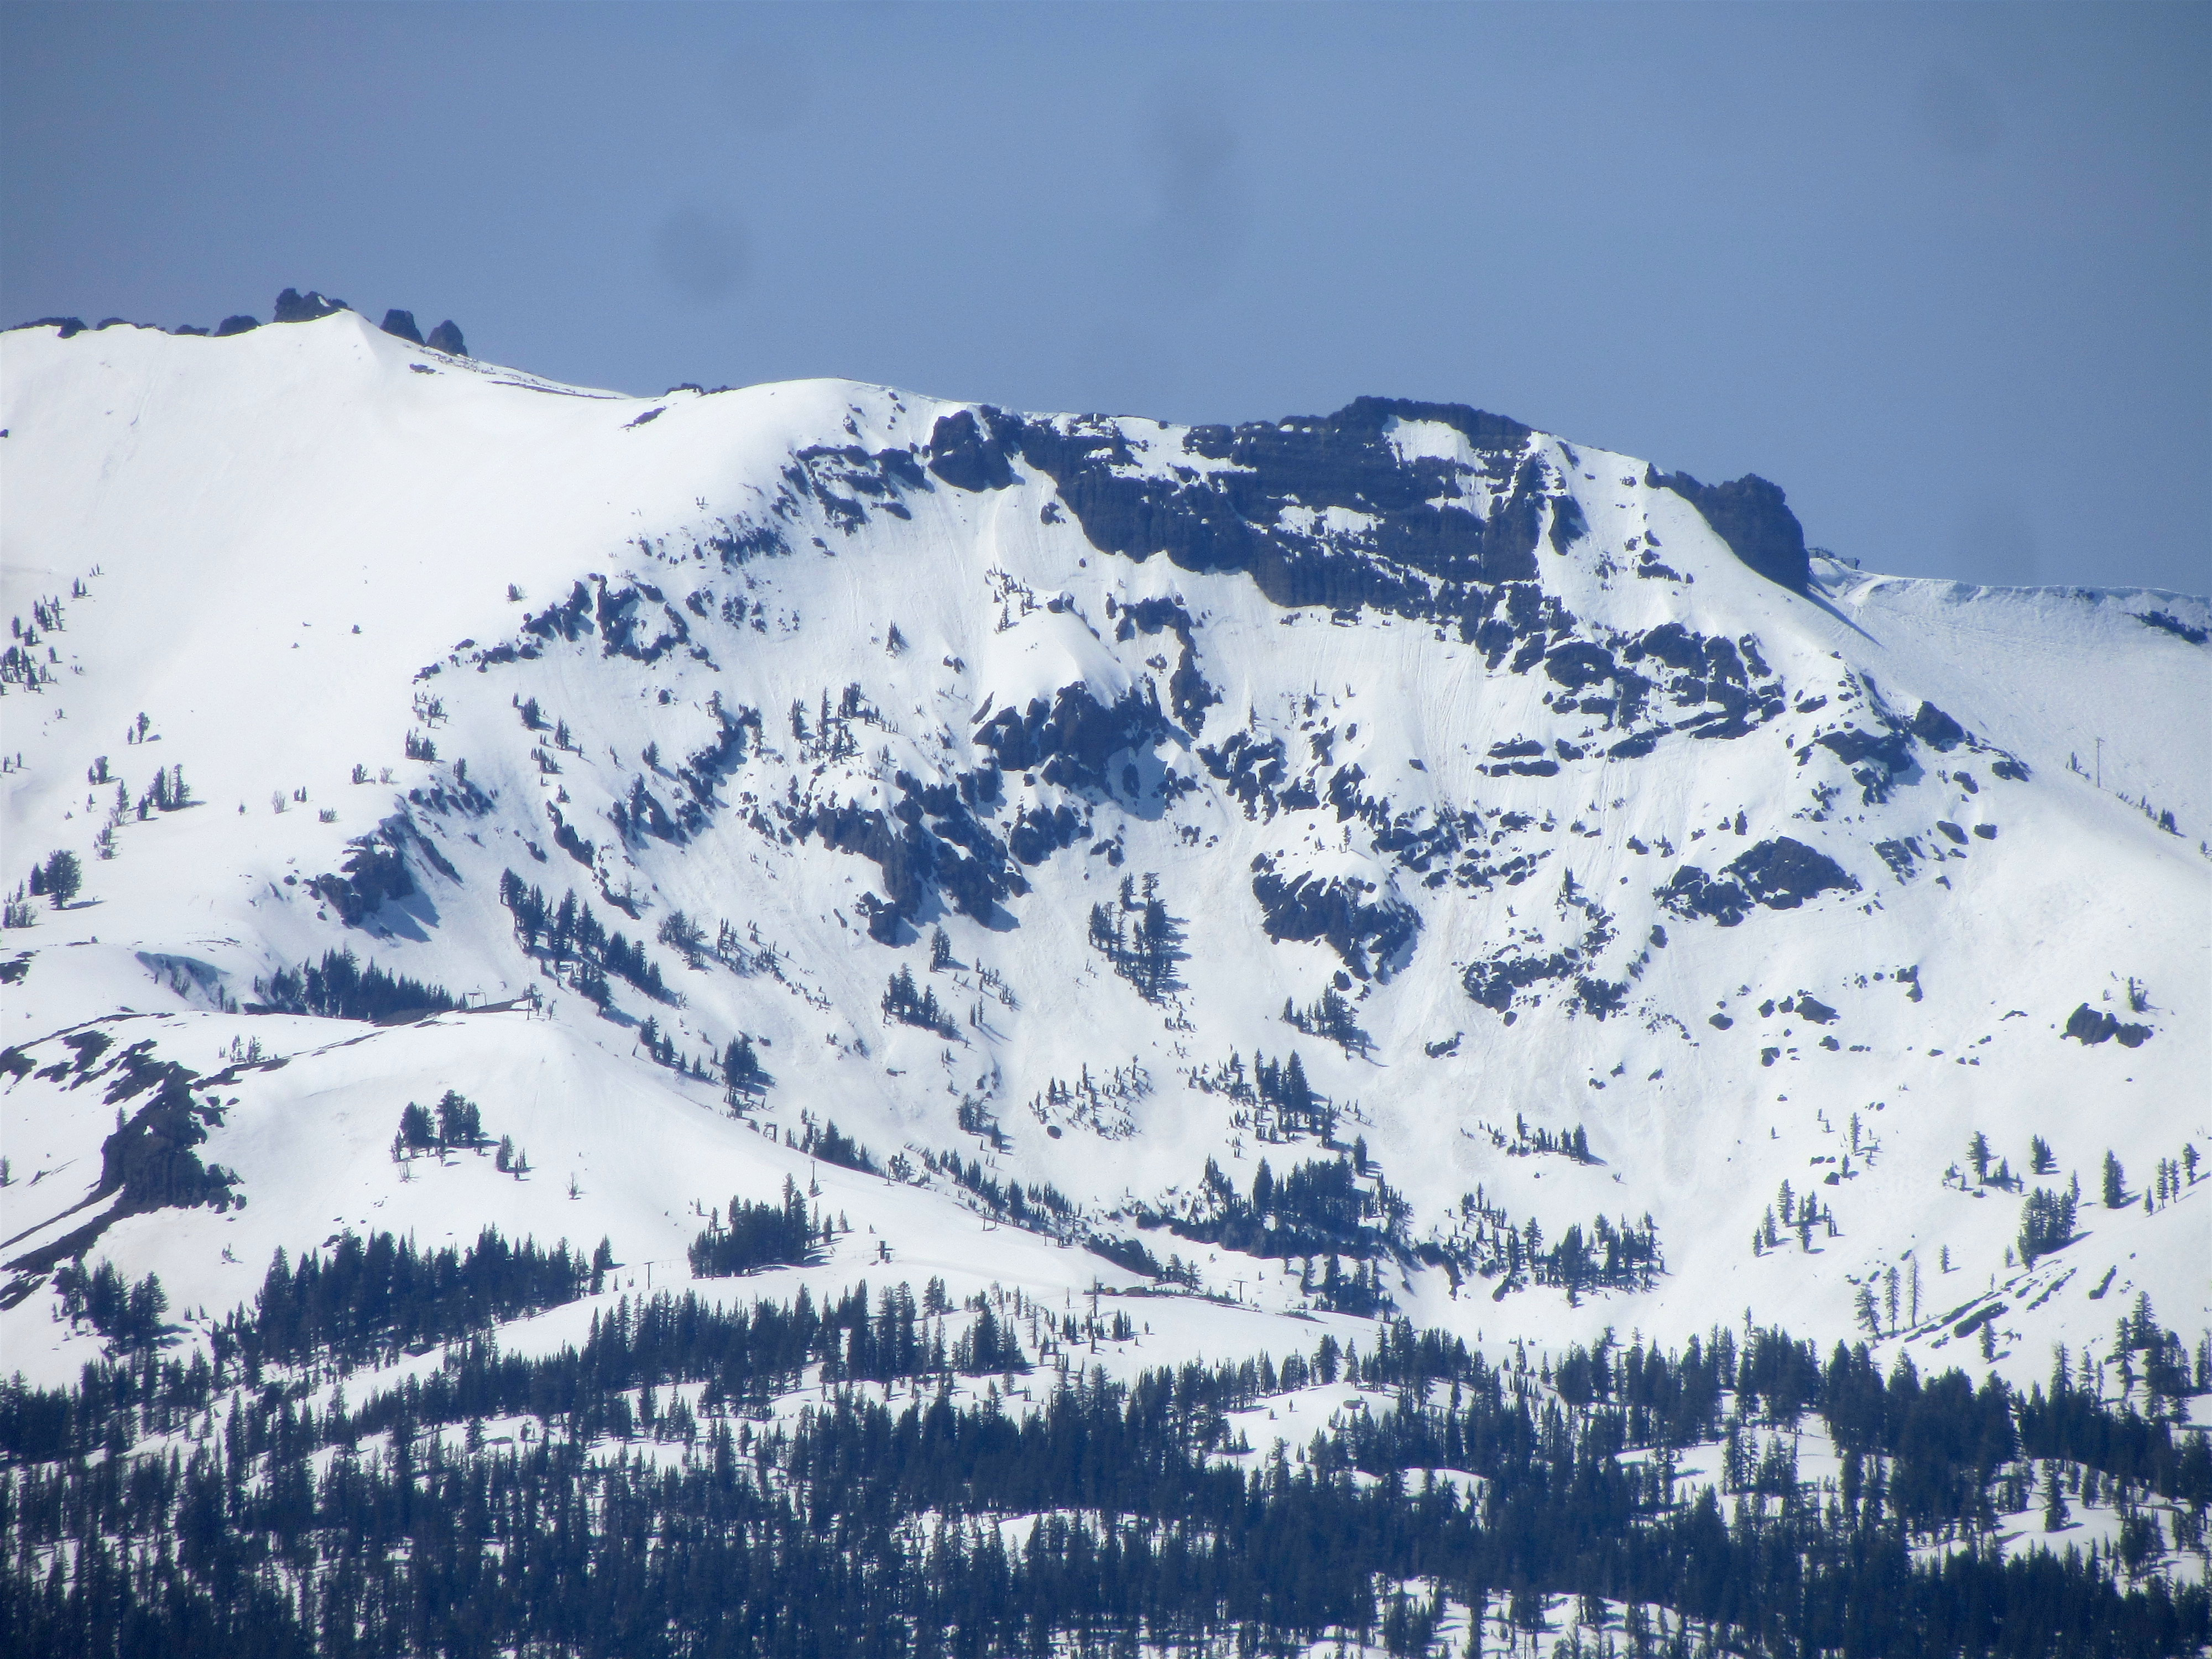 Kirkwood's Cirque is looking good and is open daily the rest of the season.